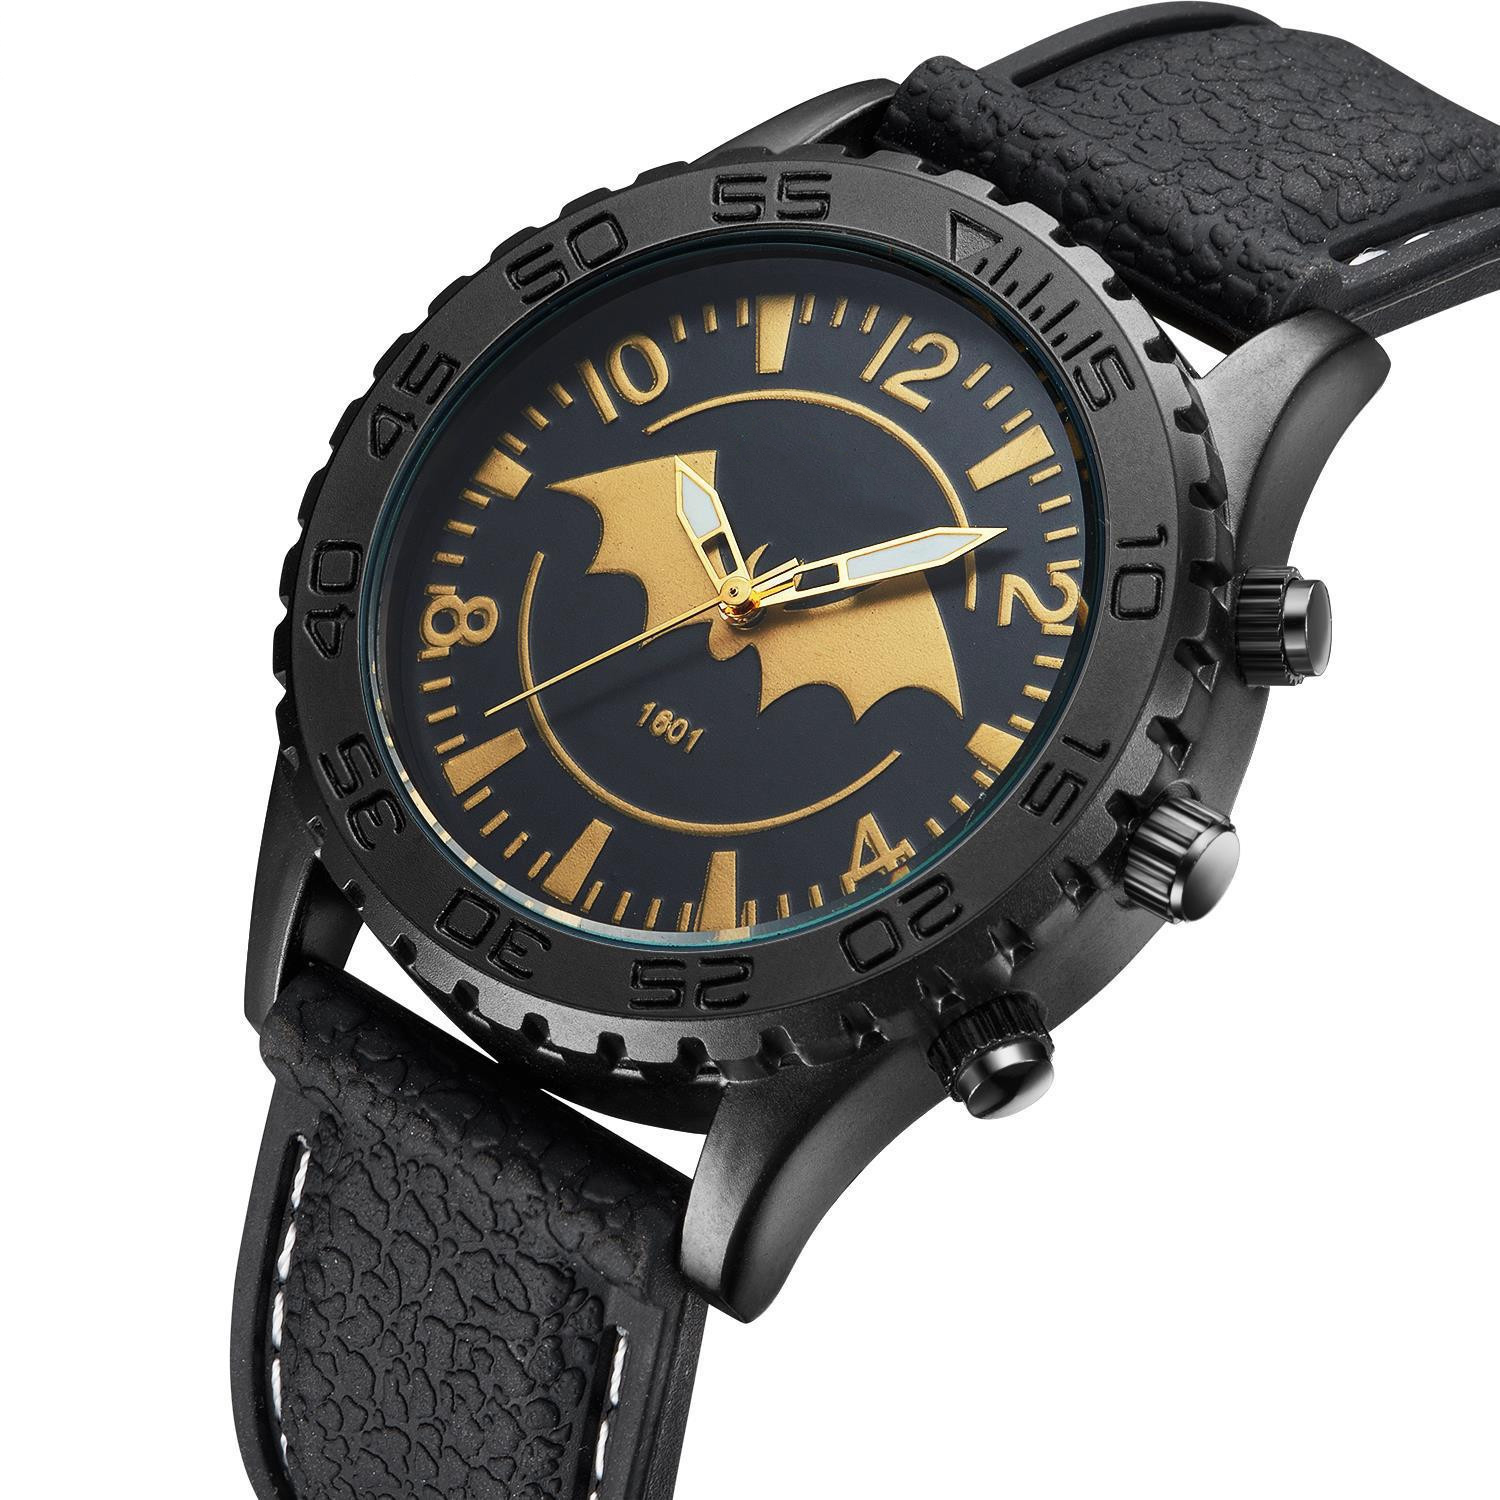 Waterproof sport outdoor men's watches wholesale Silicone Rubber Bat Watches For Men